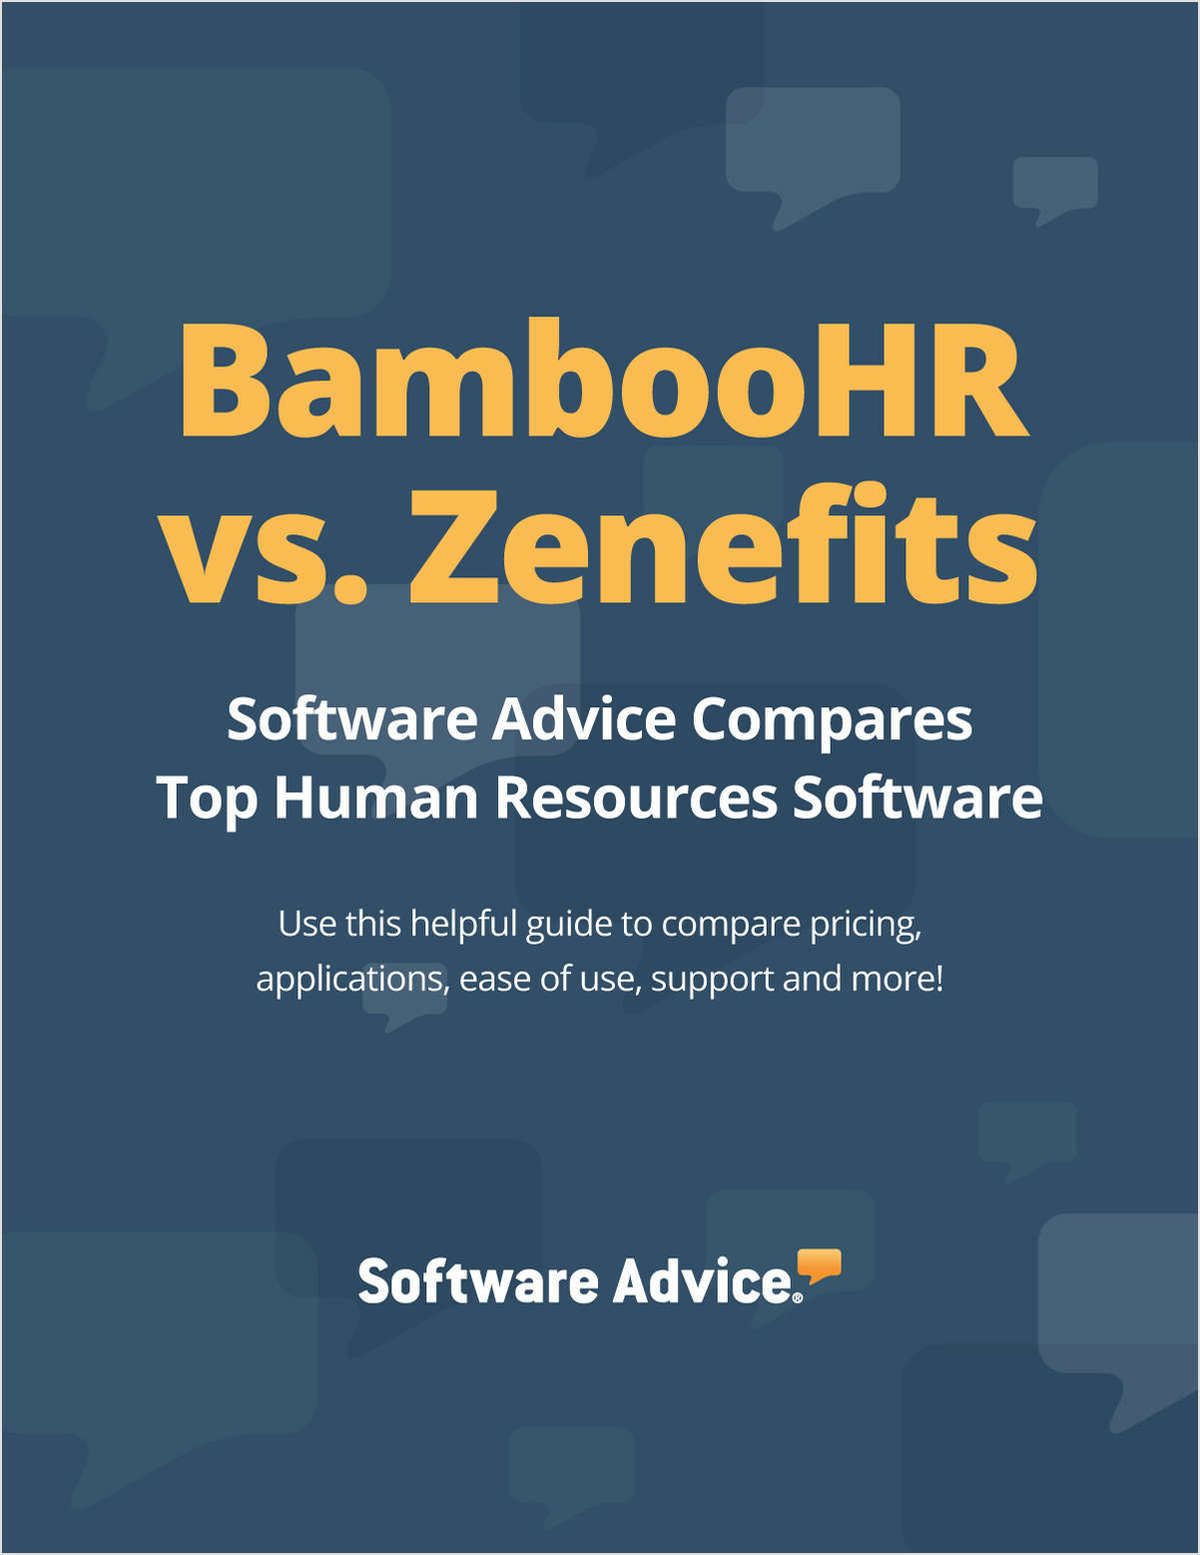 BambooHR vs. Zenefits - Compare Top Human Resources Software Systems